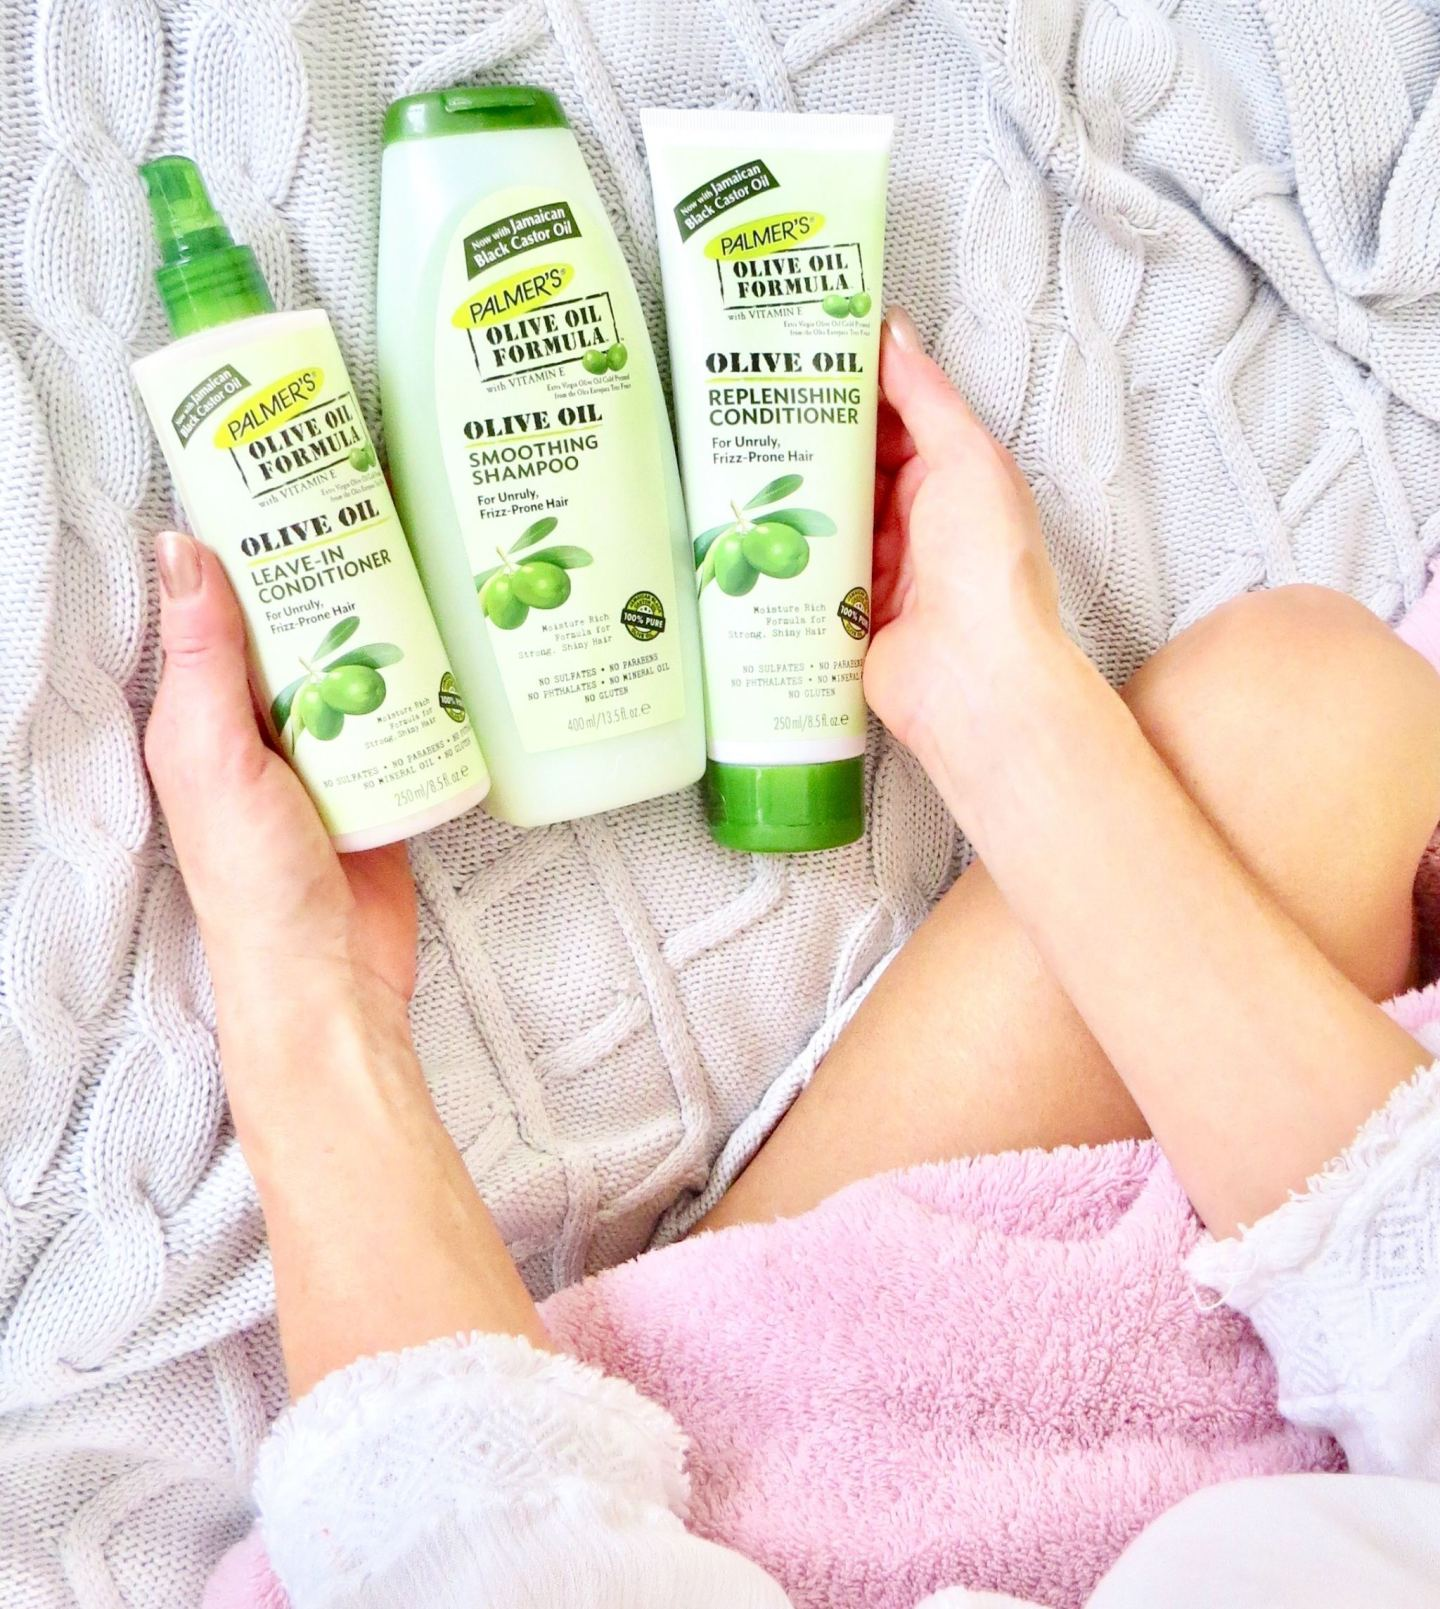 Palmer's Olive oil haircare